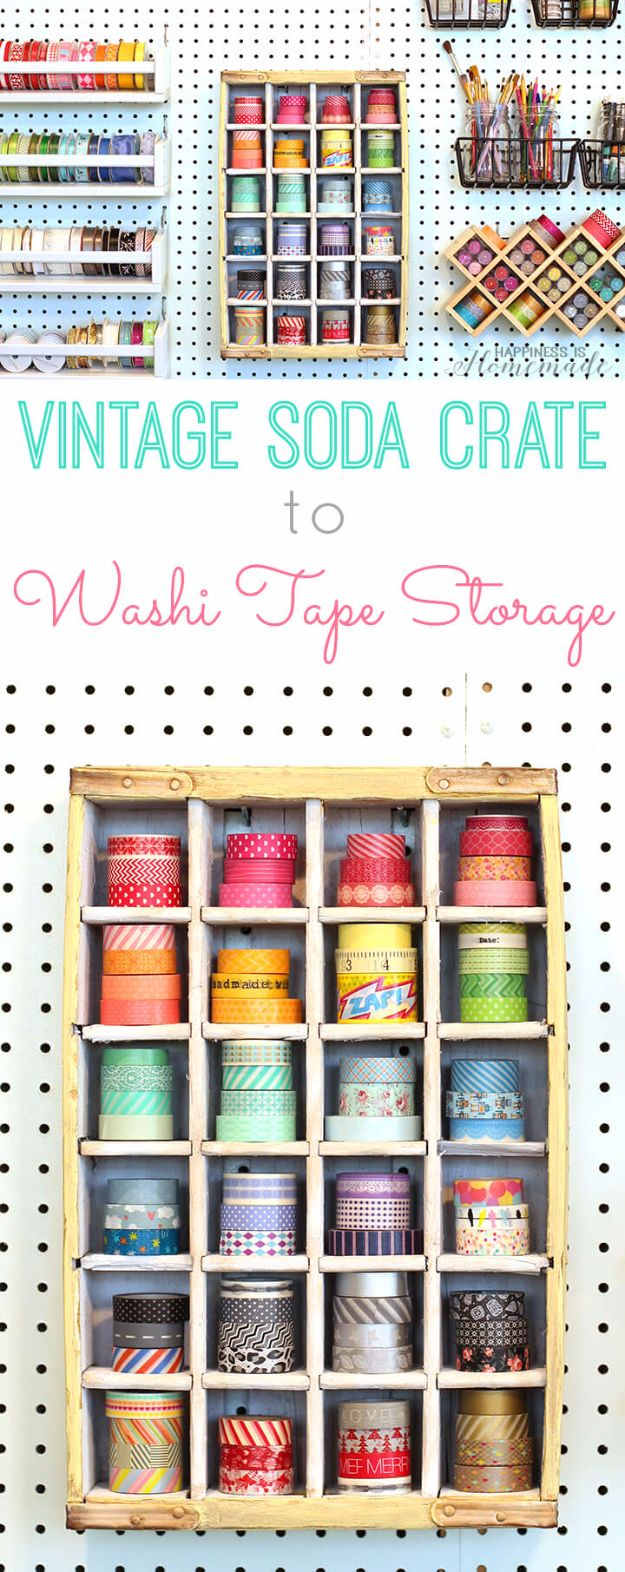 DIY Craft Room Storage Ideas and Craft Room Organization Projects - Vintage Soda Crate Storage - Cool Ideas for Do It Yourself Craft Storage, Craft Room Decor and Organizing Project Ideas - fabric, paper, pens, creative tools, crafts supplies, shelves and sewing notions #diyideas #craftroom